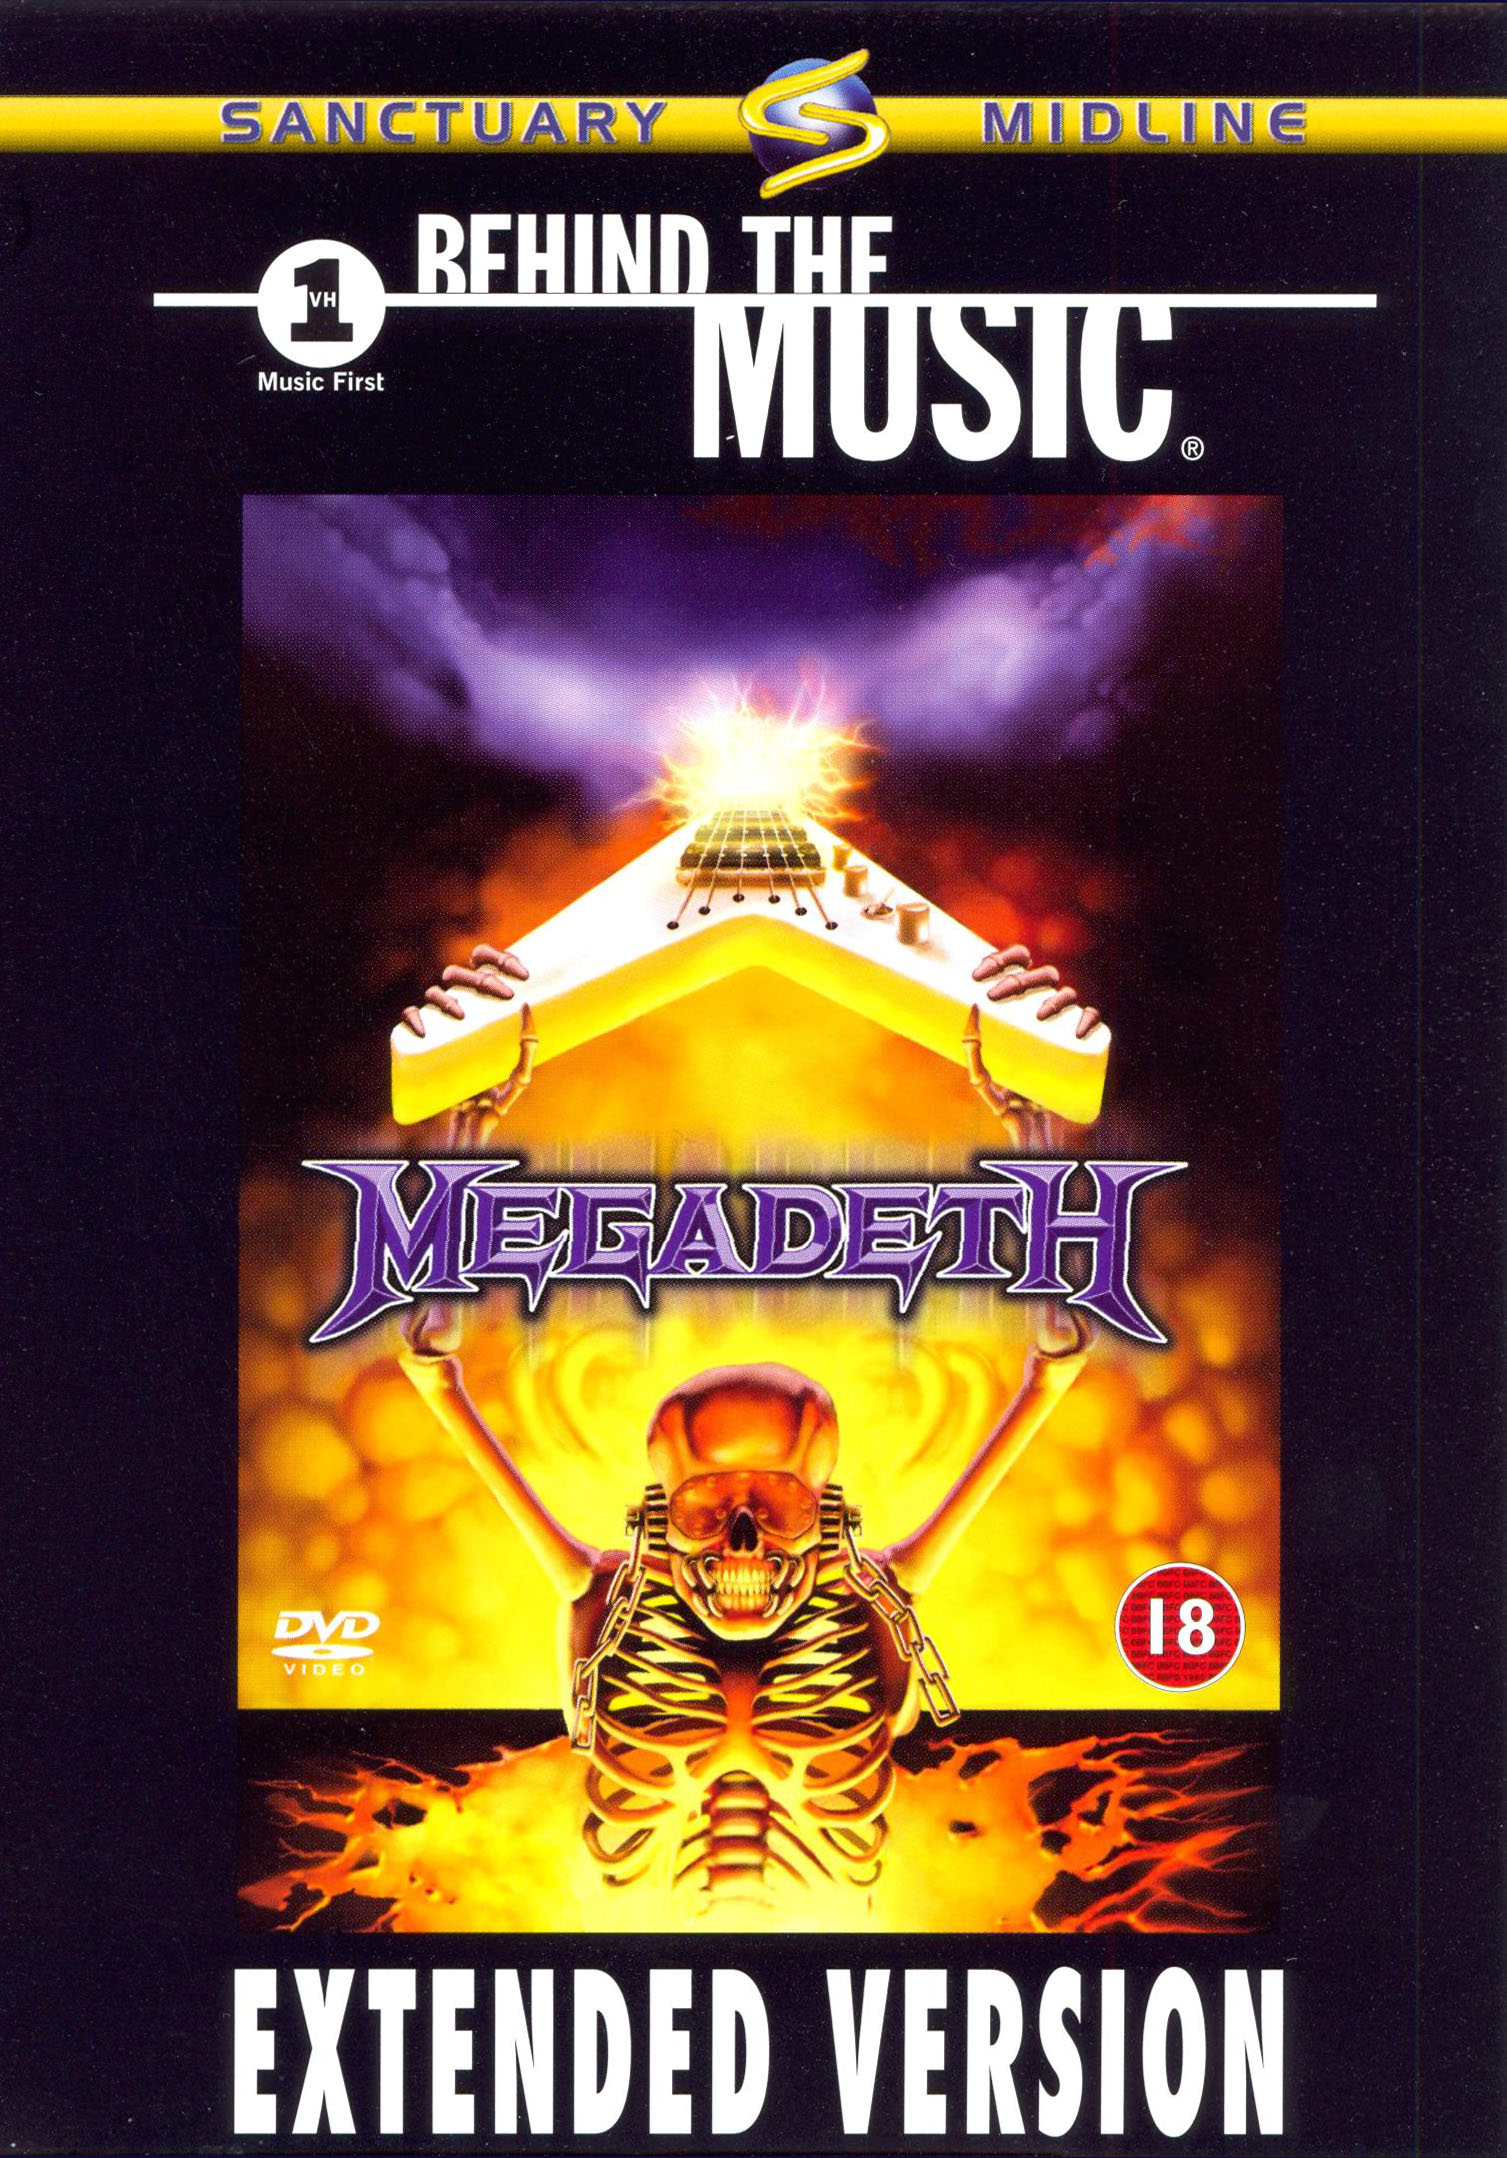 VH1: Behind the Music - Megadeth (2001) - | Releases | AllMovie